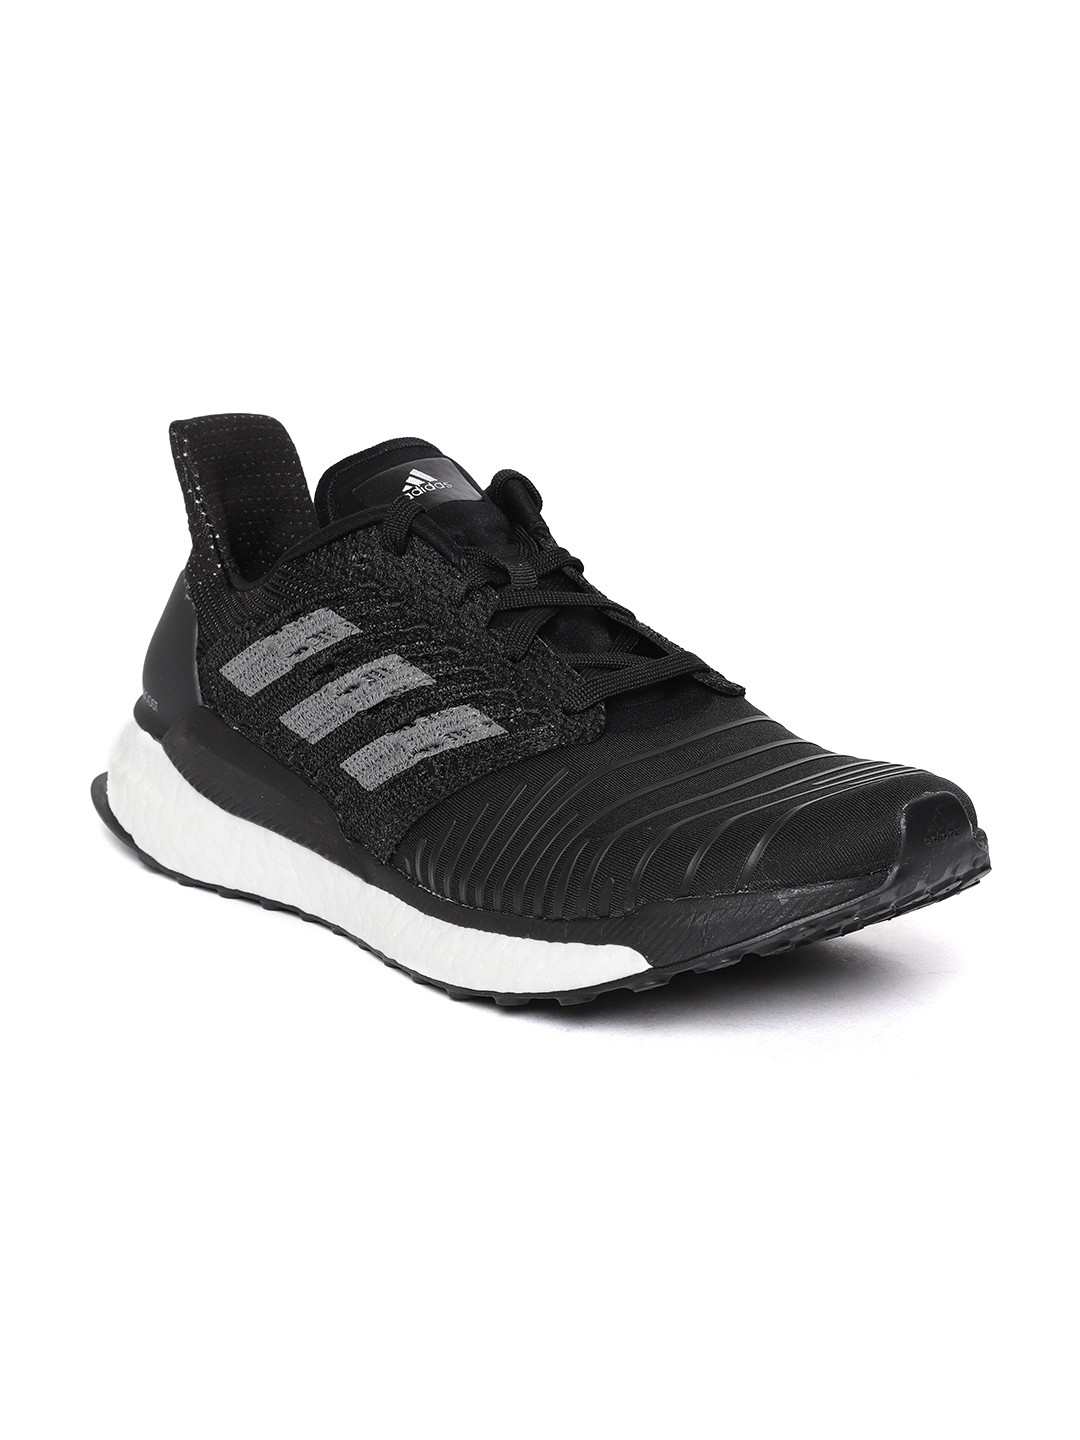 4fa31d0905438 Buy ADIDAS Men Black Solar Boost Striped Running Shoes - Sports ...